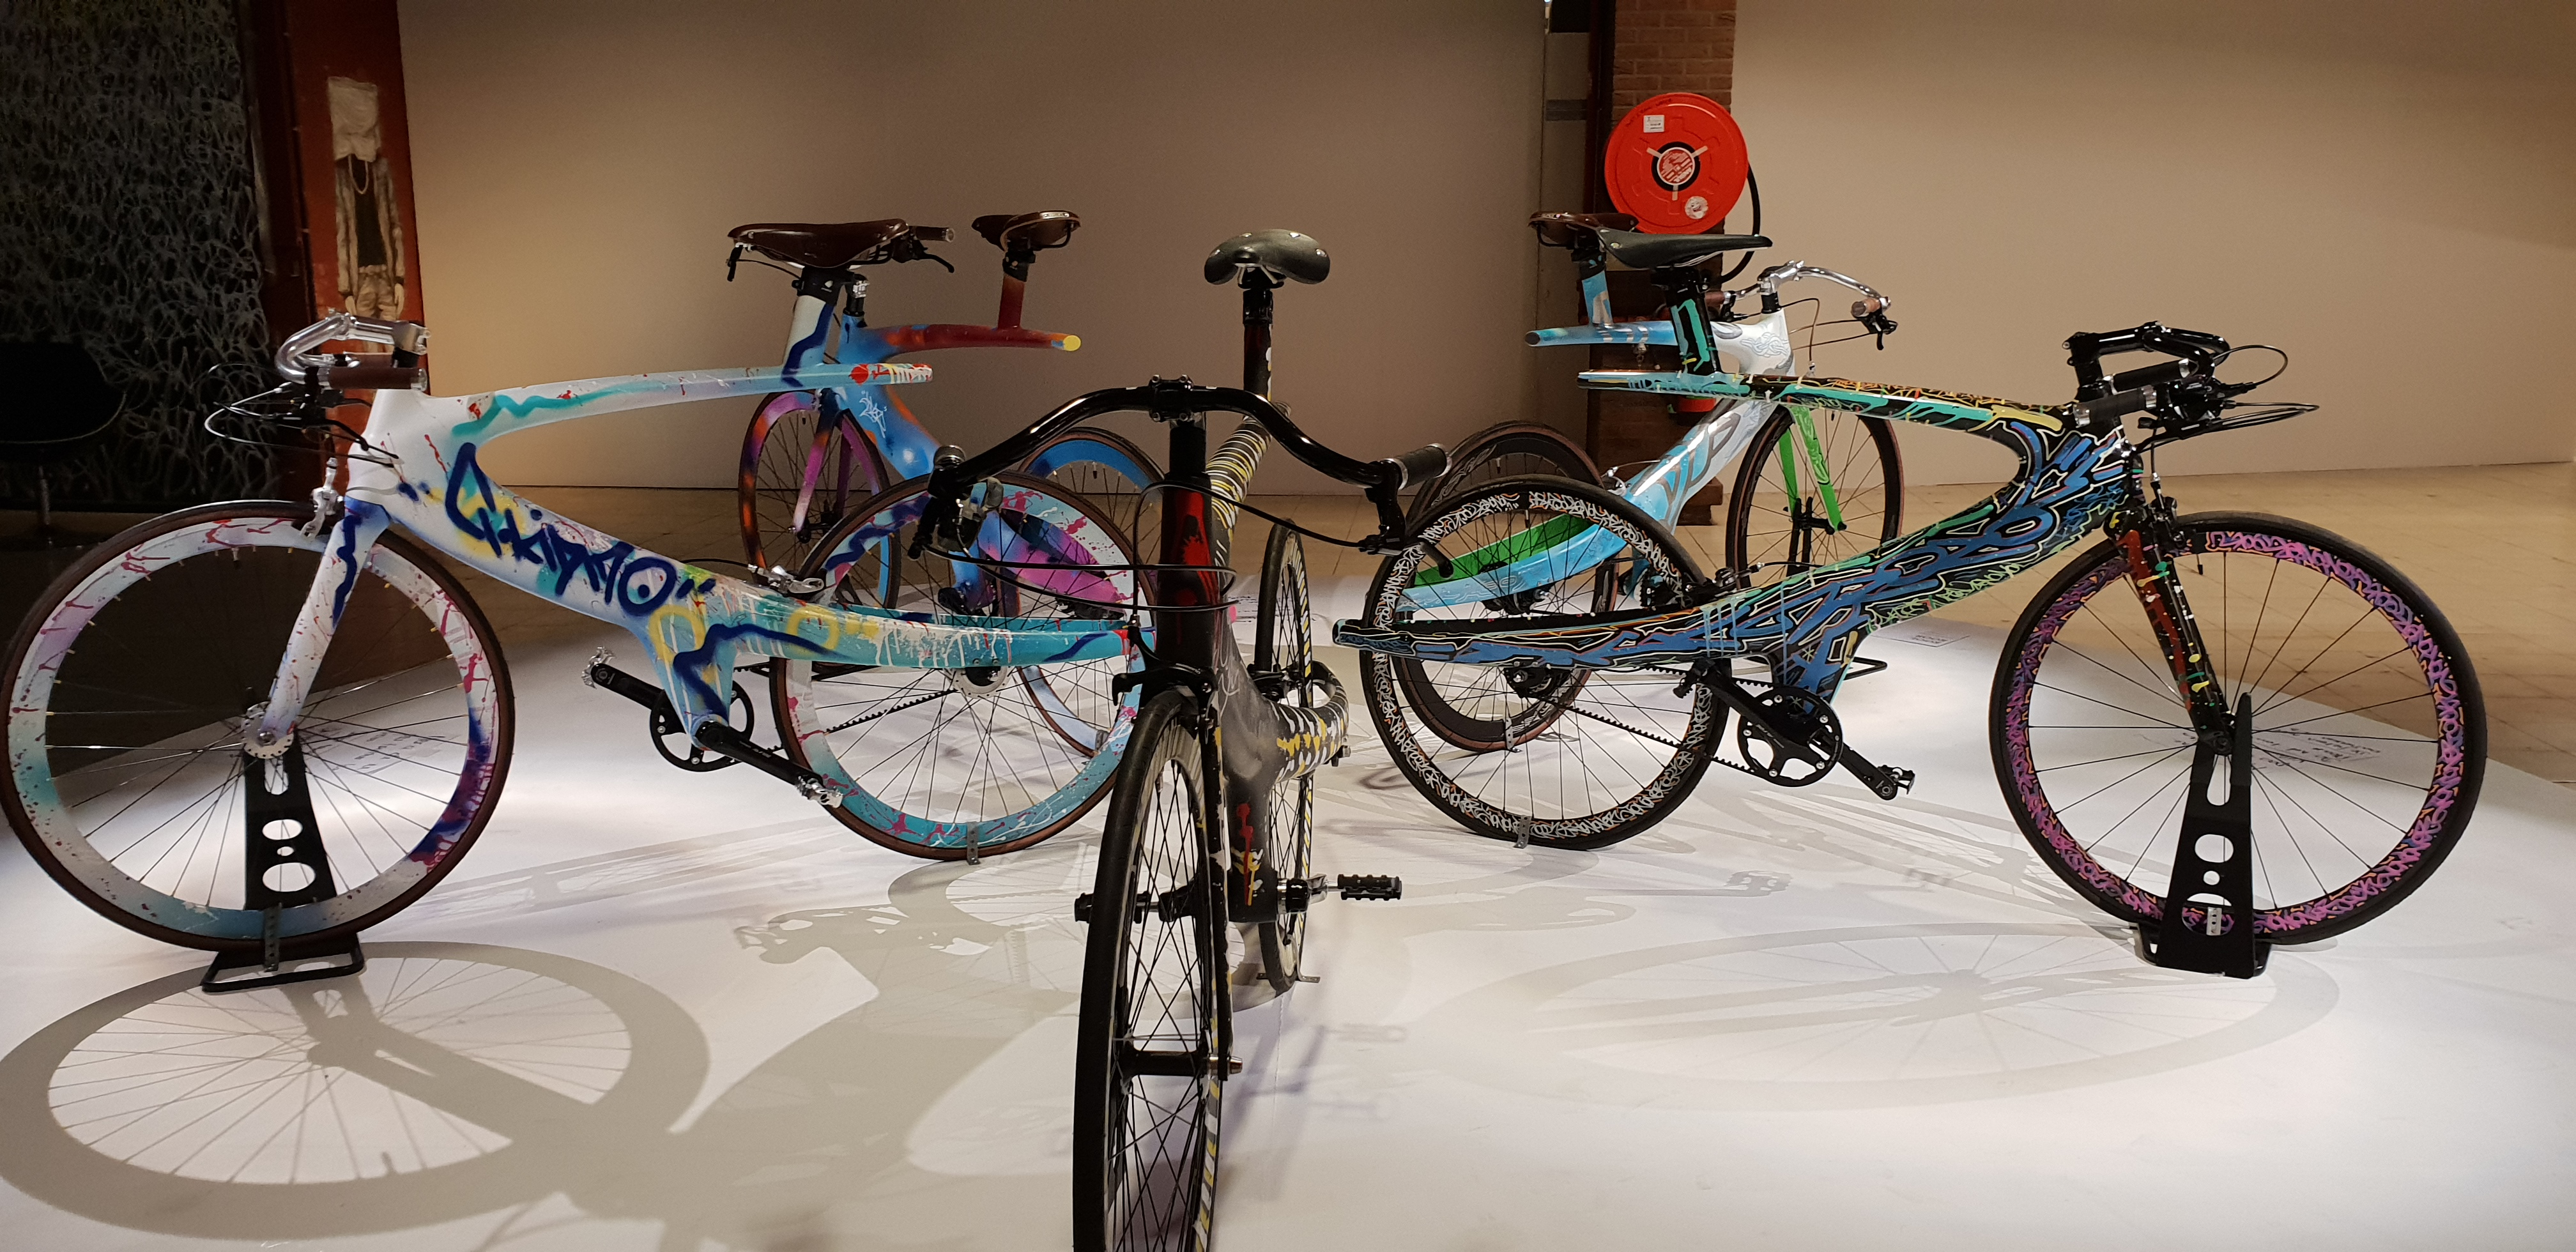 Velos customisés - Strokar Inside 2018 - ©No Fake In My News